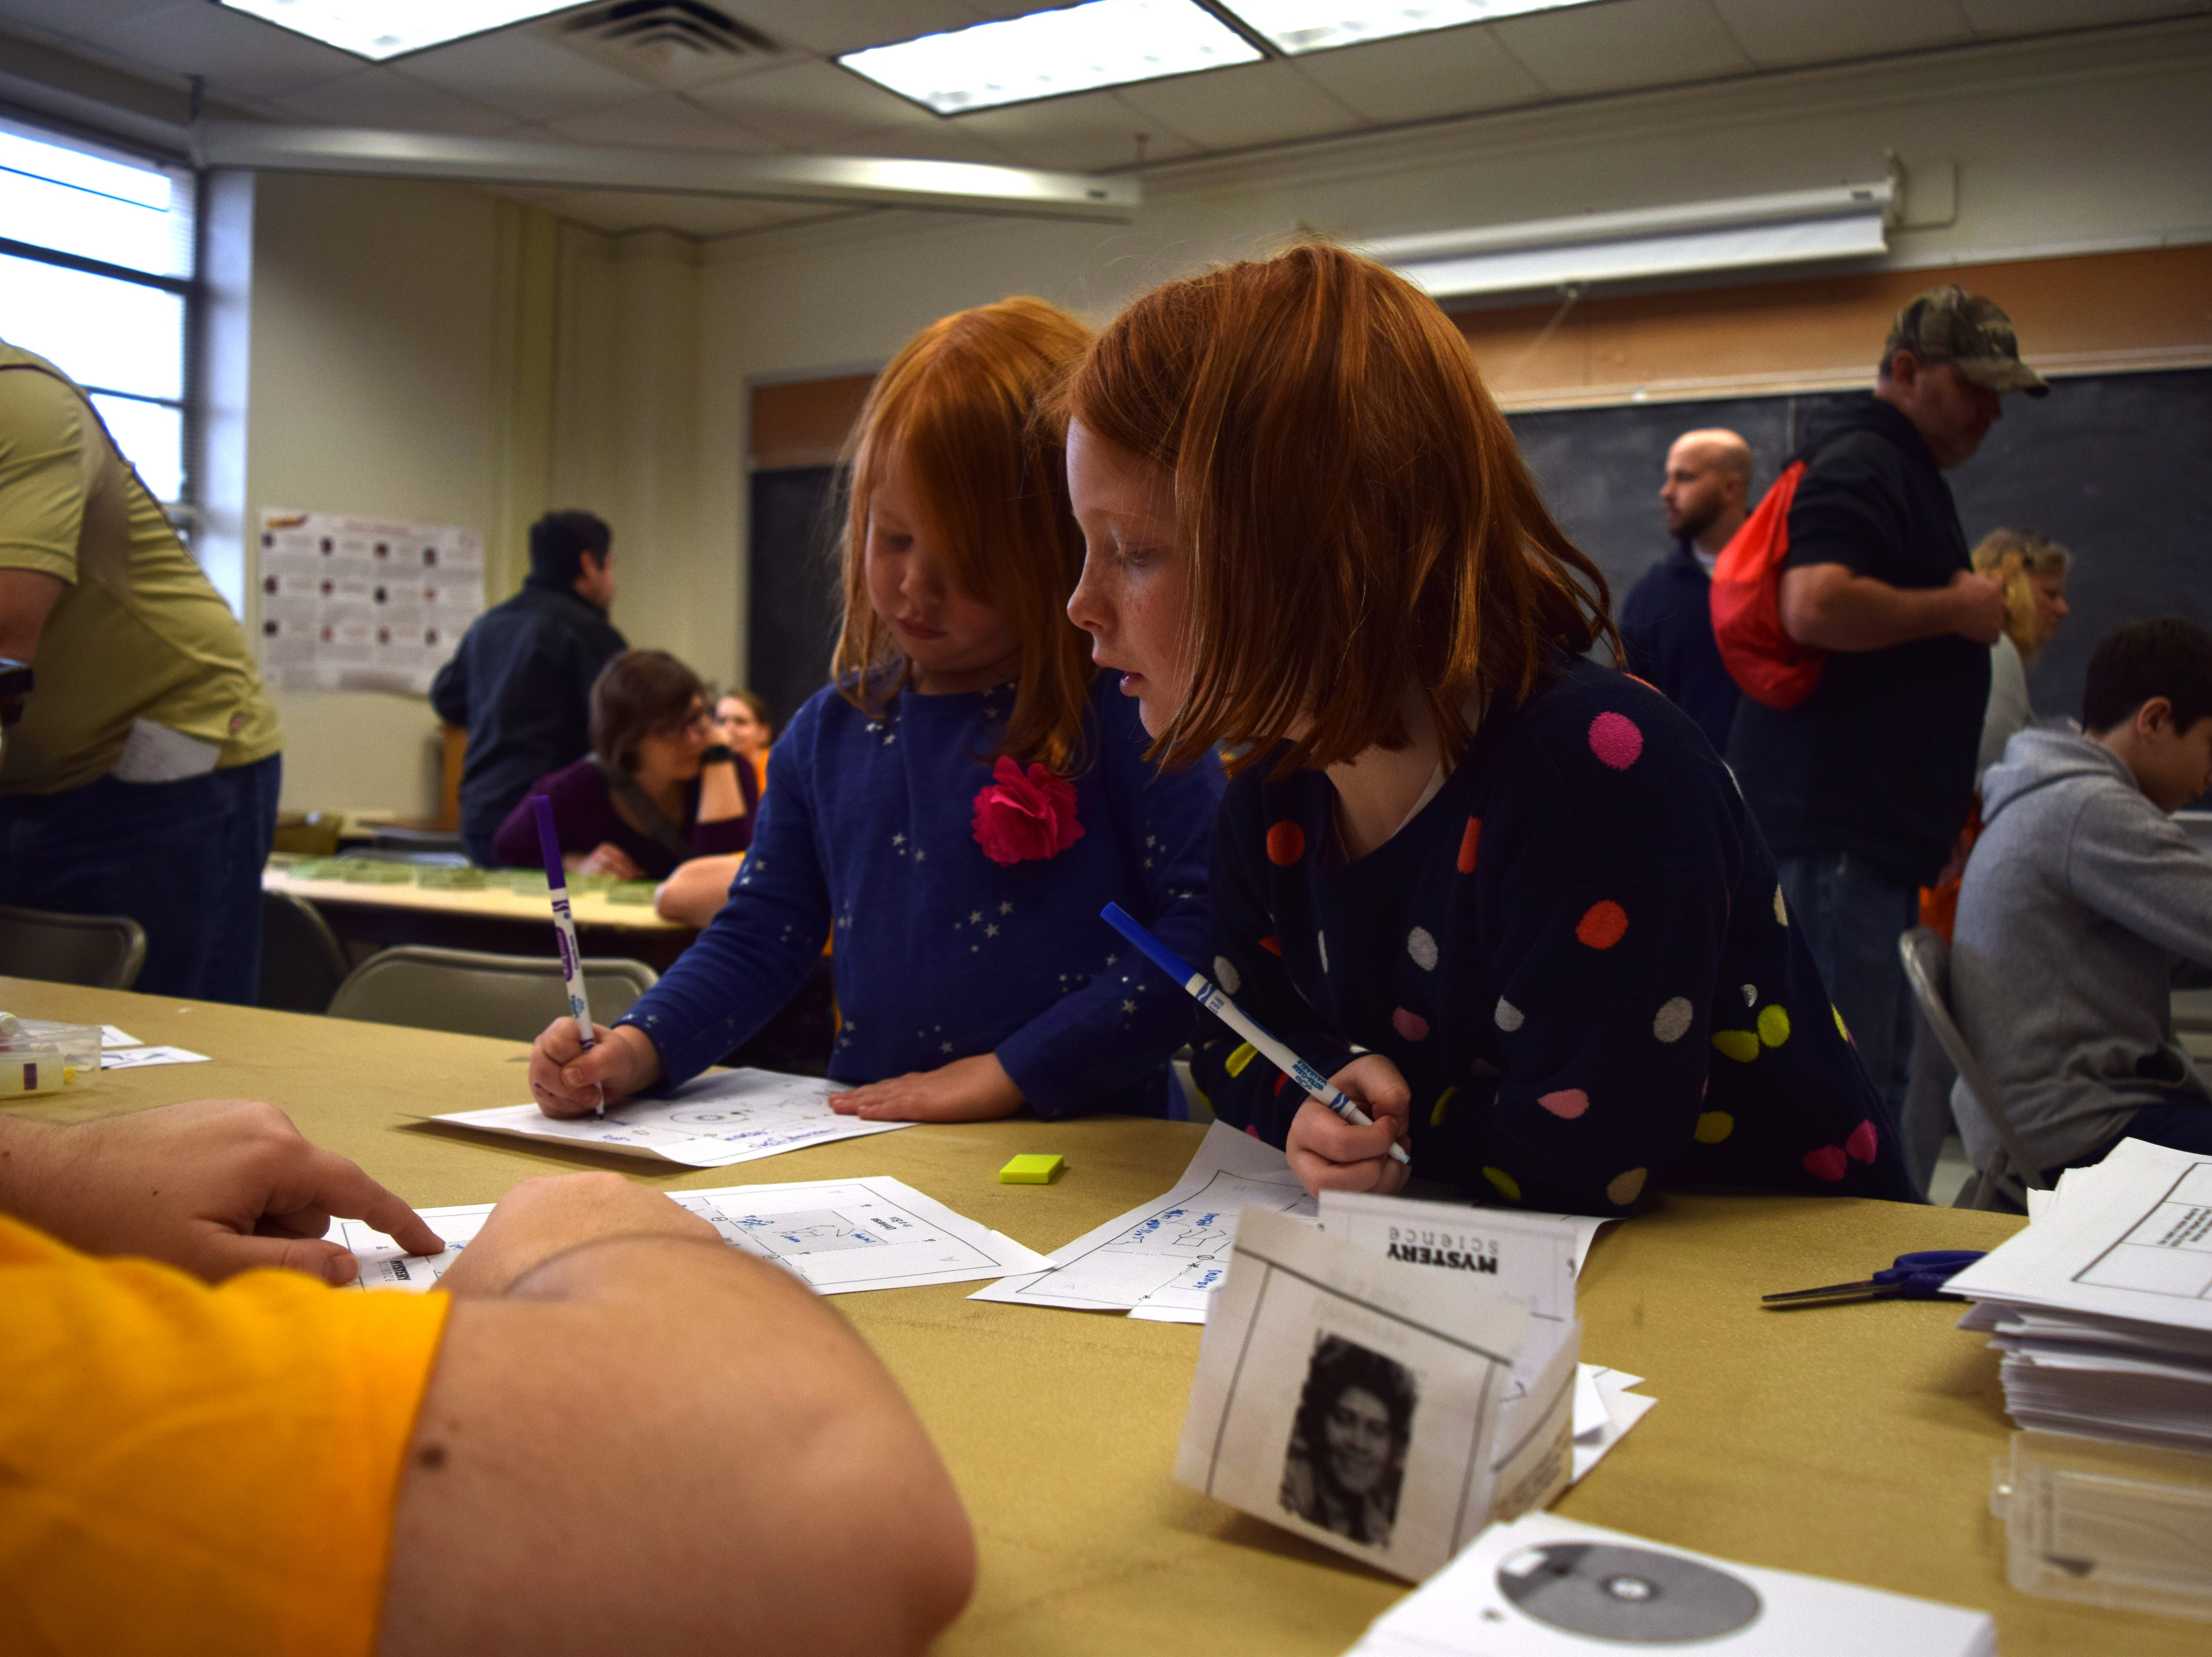 Fiona King (left) and Ellery King (right) learn about constellations in the Women in Mathematics room during FSU Math Fun Day on Saturday.